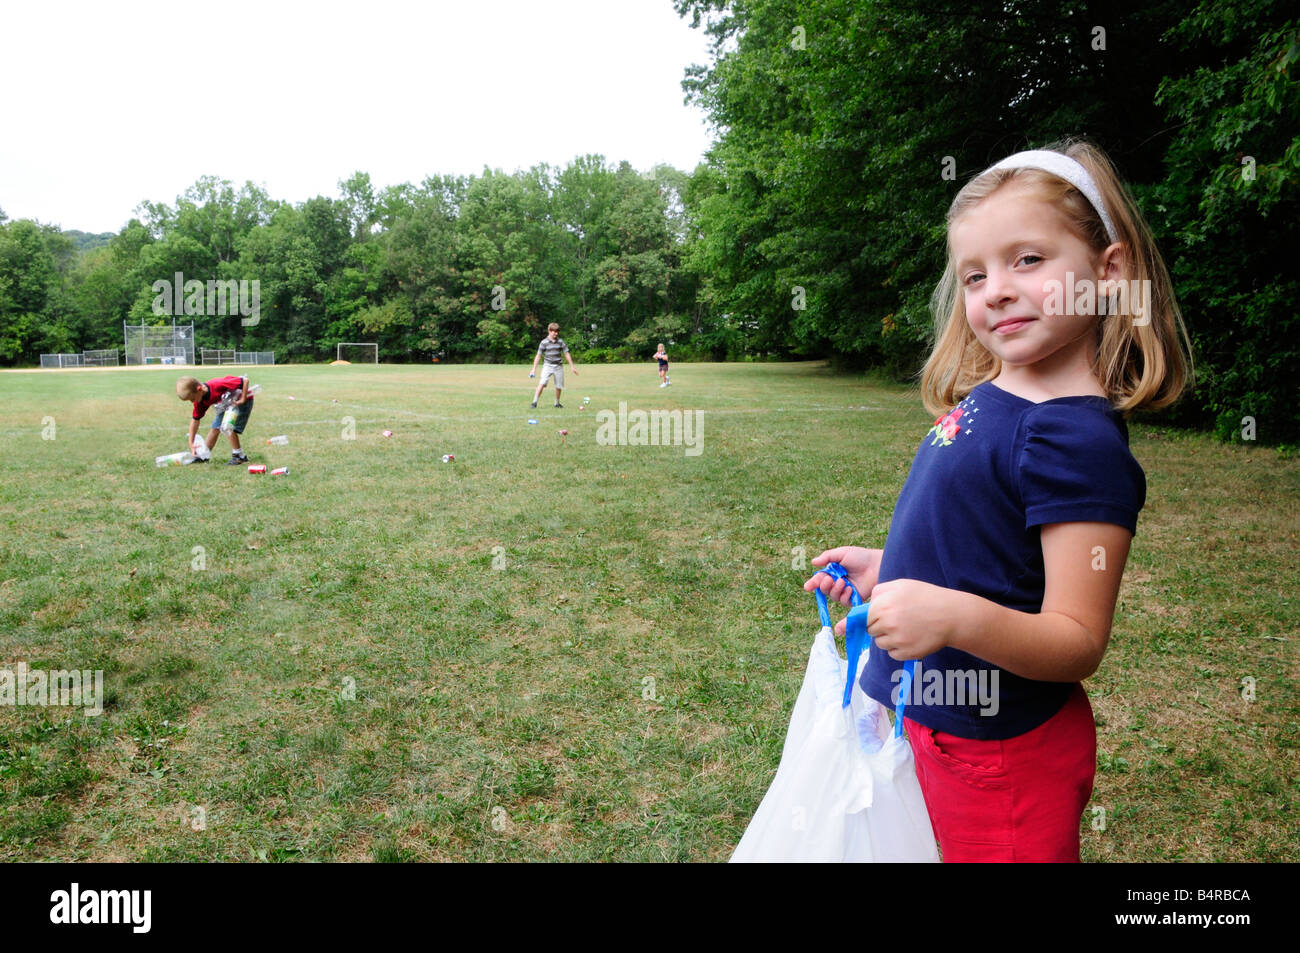 Girl holding a garbage bag helping community service effort picking up recyclable litter in a park or field - Stock Image